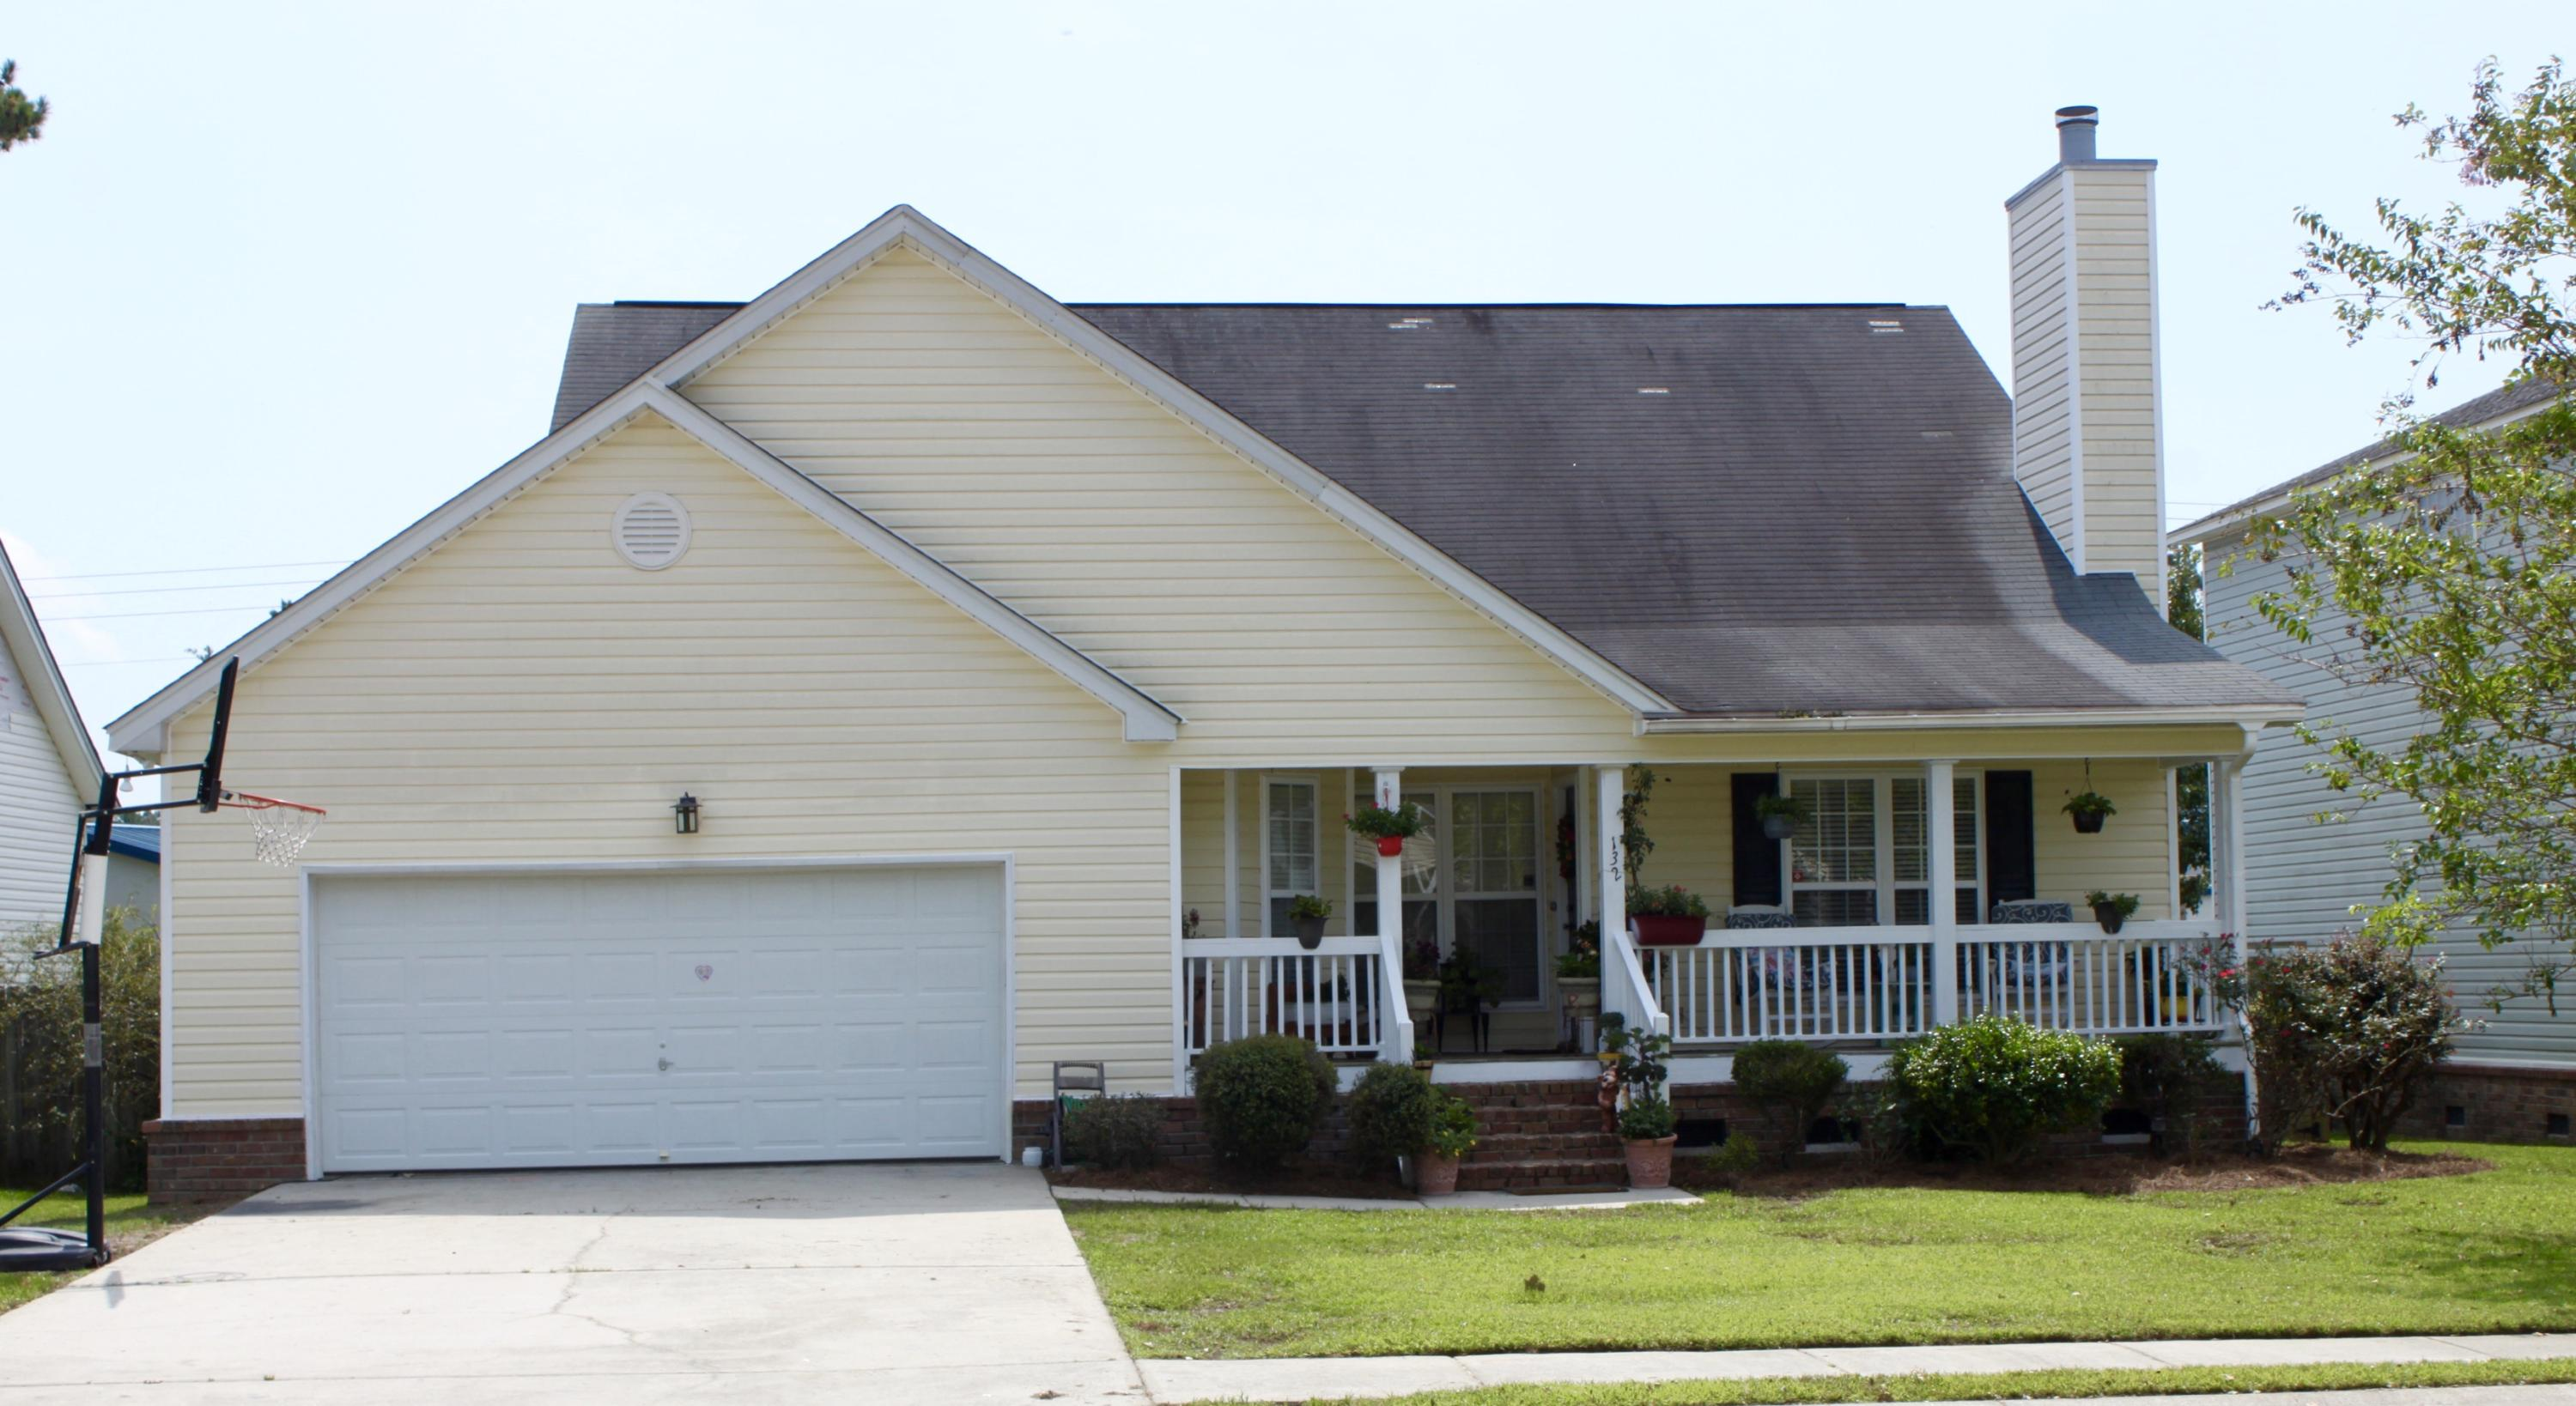 132 Cotillion Crescent Summerville, SC 29483